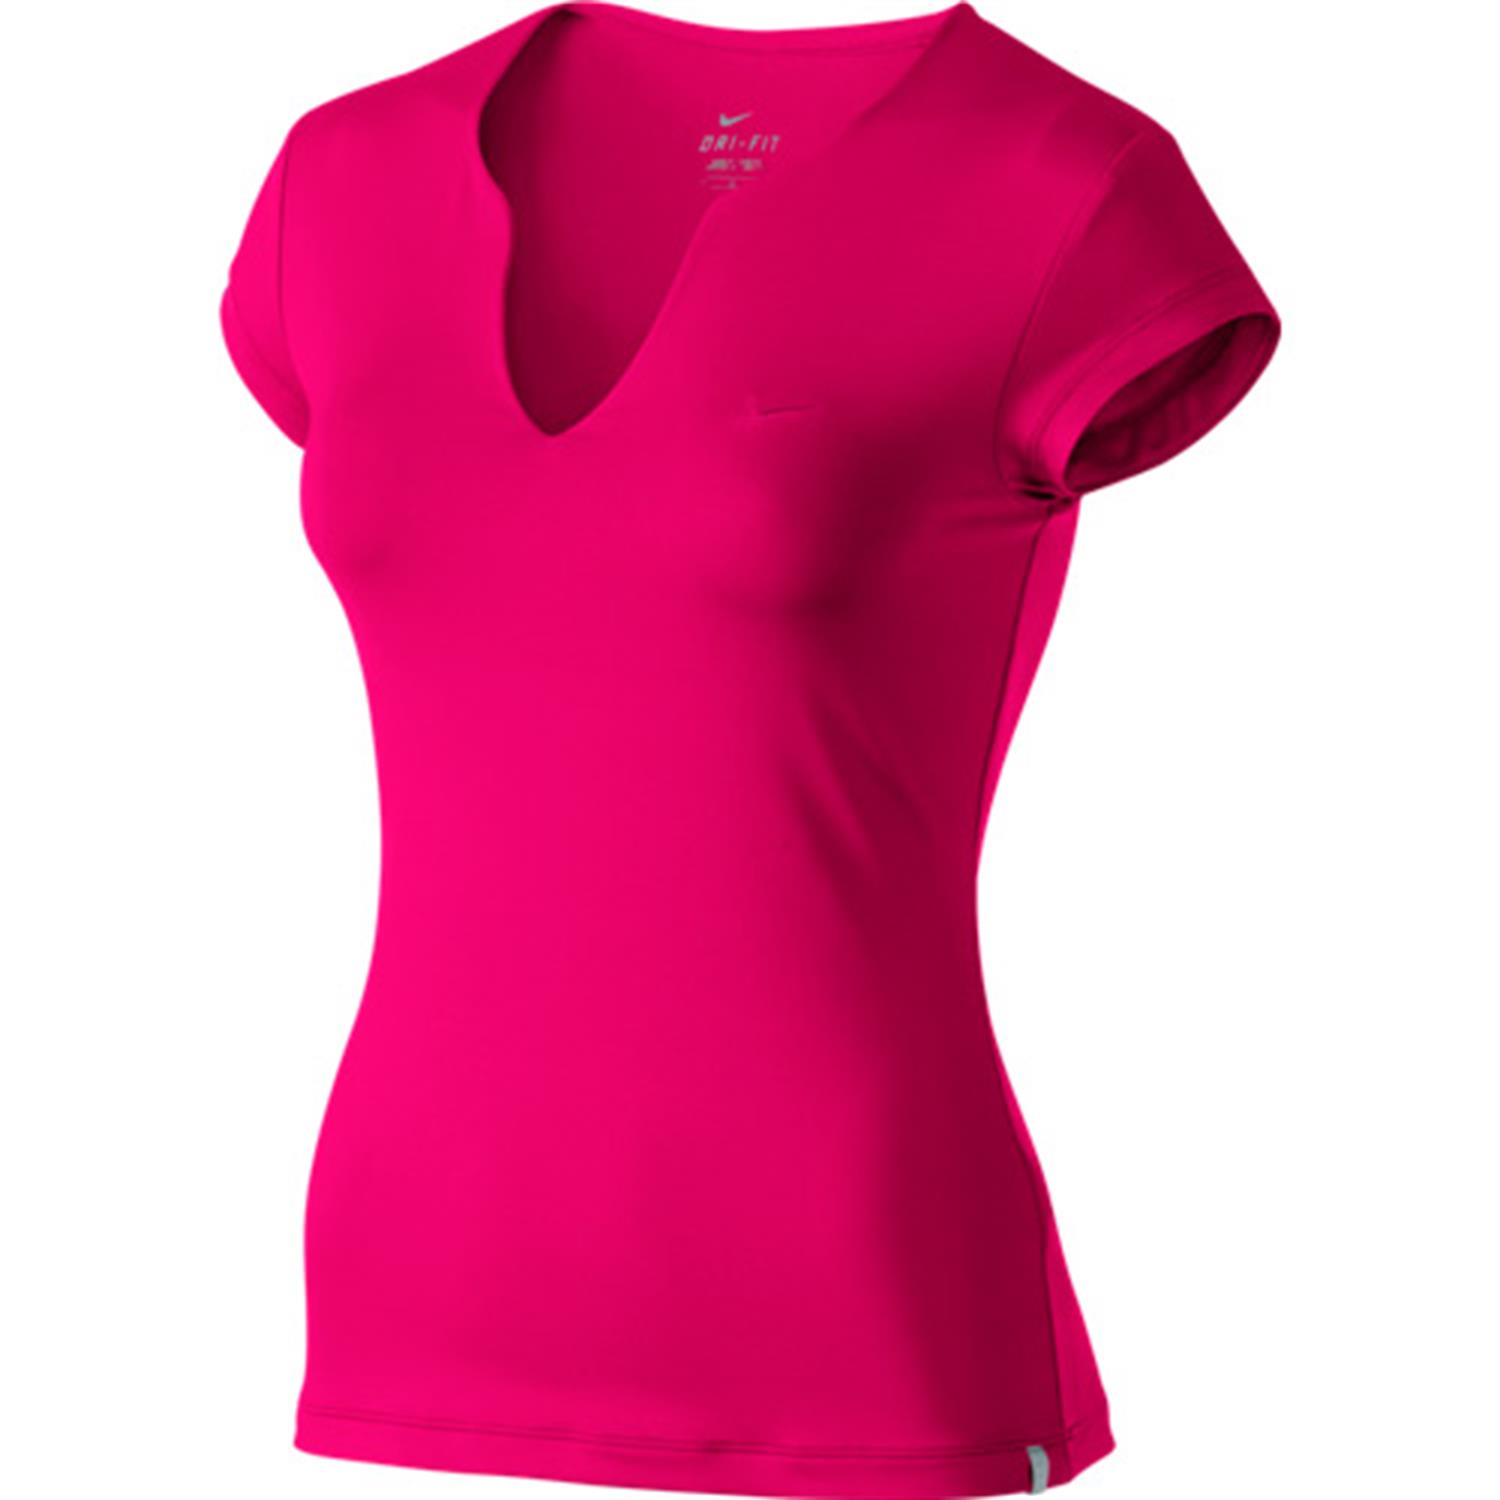 Nike Pure T-Shirt Pink Donna